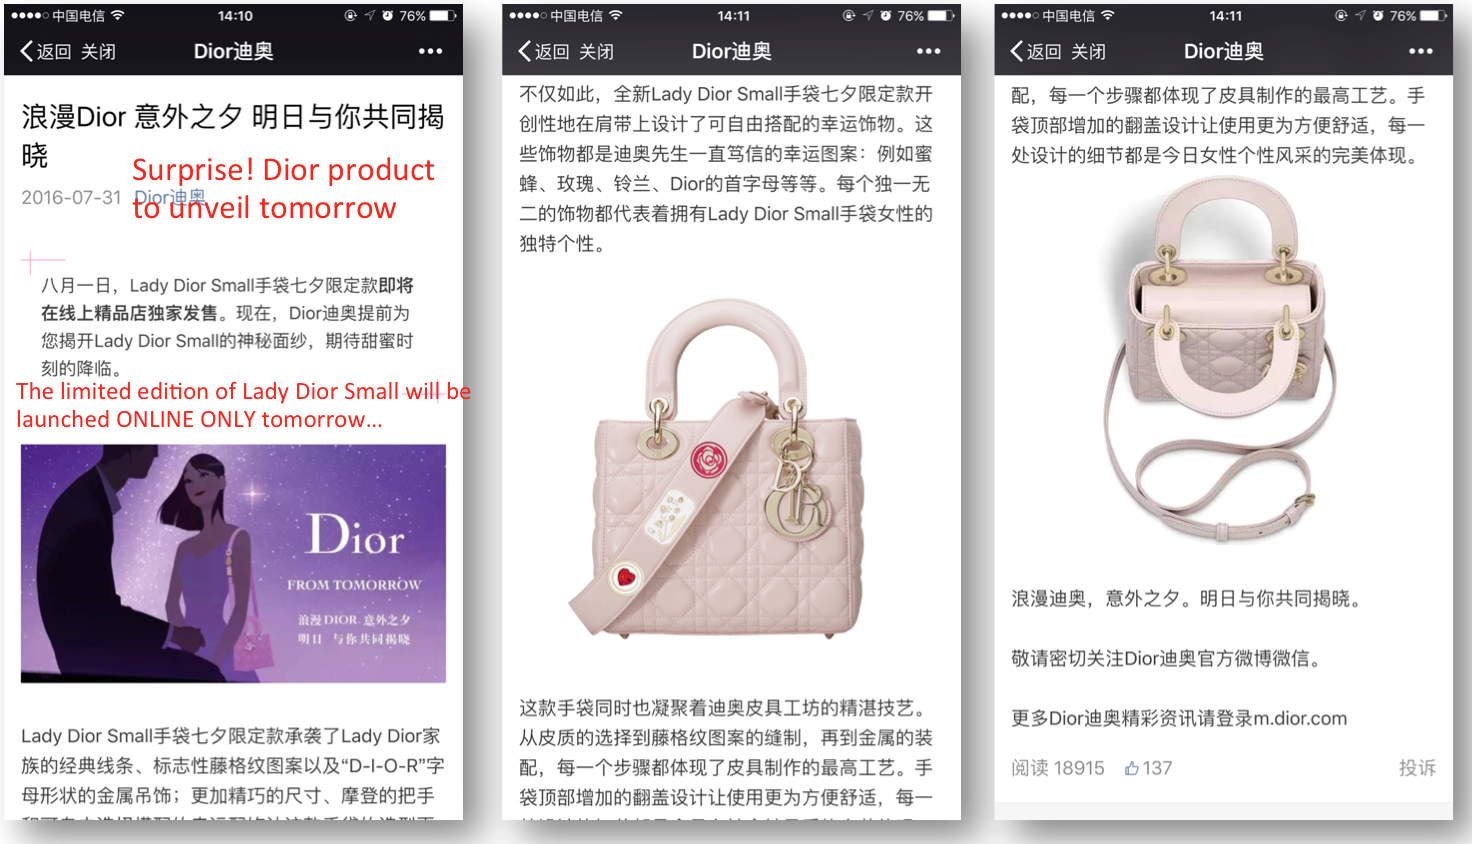 dior-wechat-luxury-china